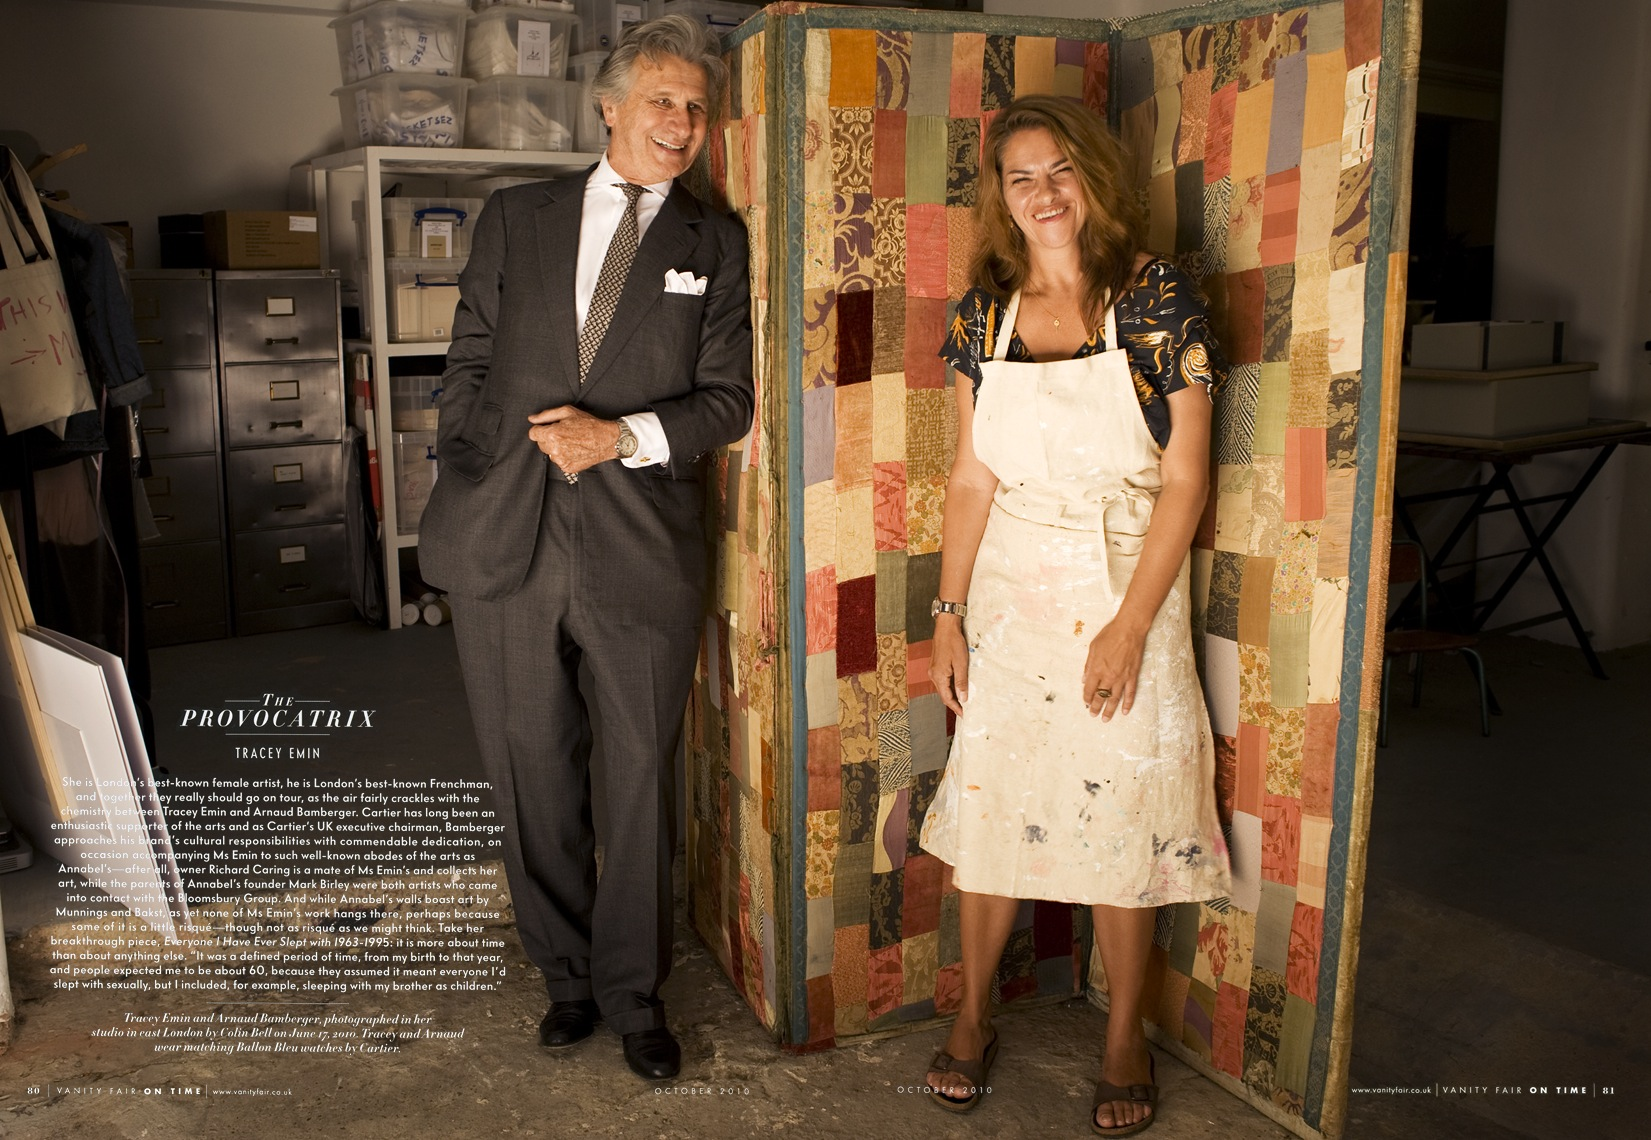 Tracey Emin and Arnaud Bamberger, for Vanity Fair UK